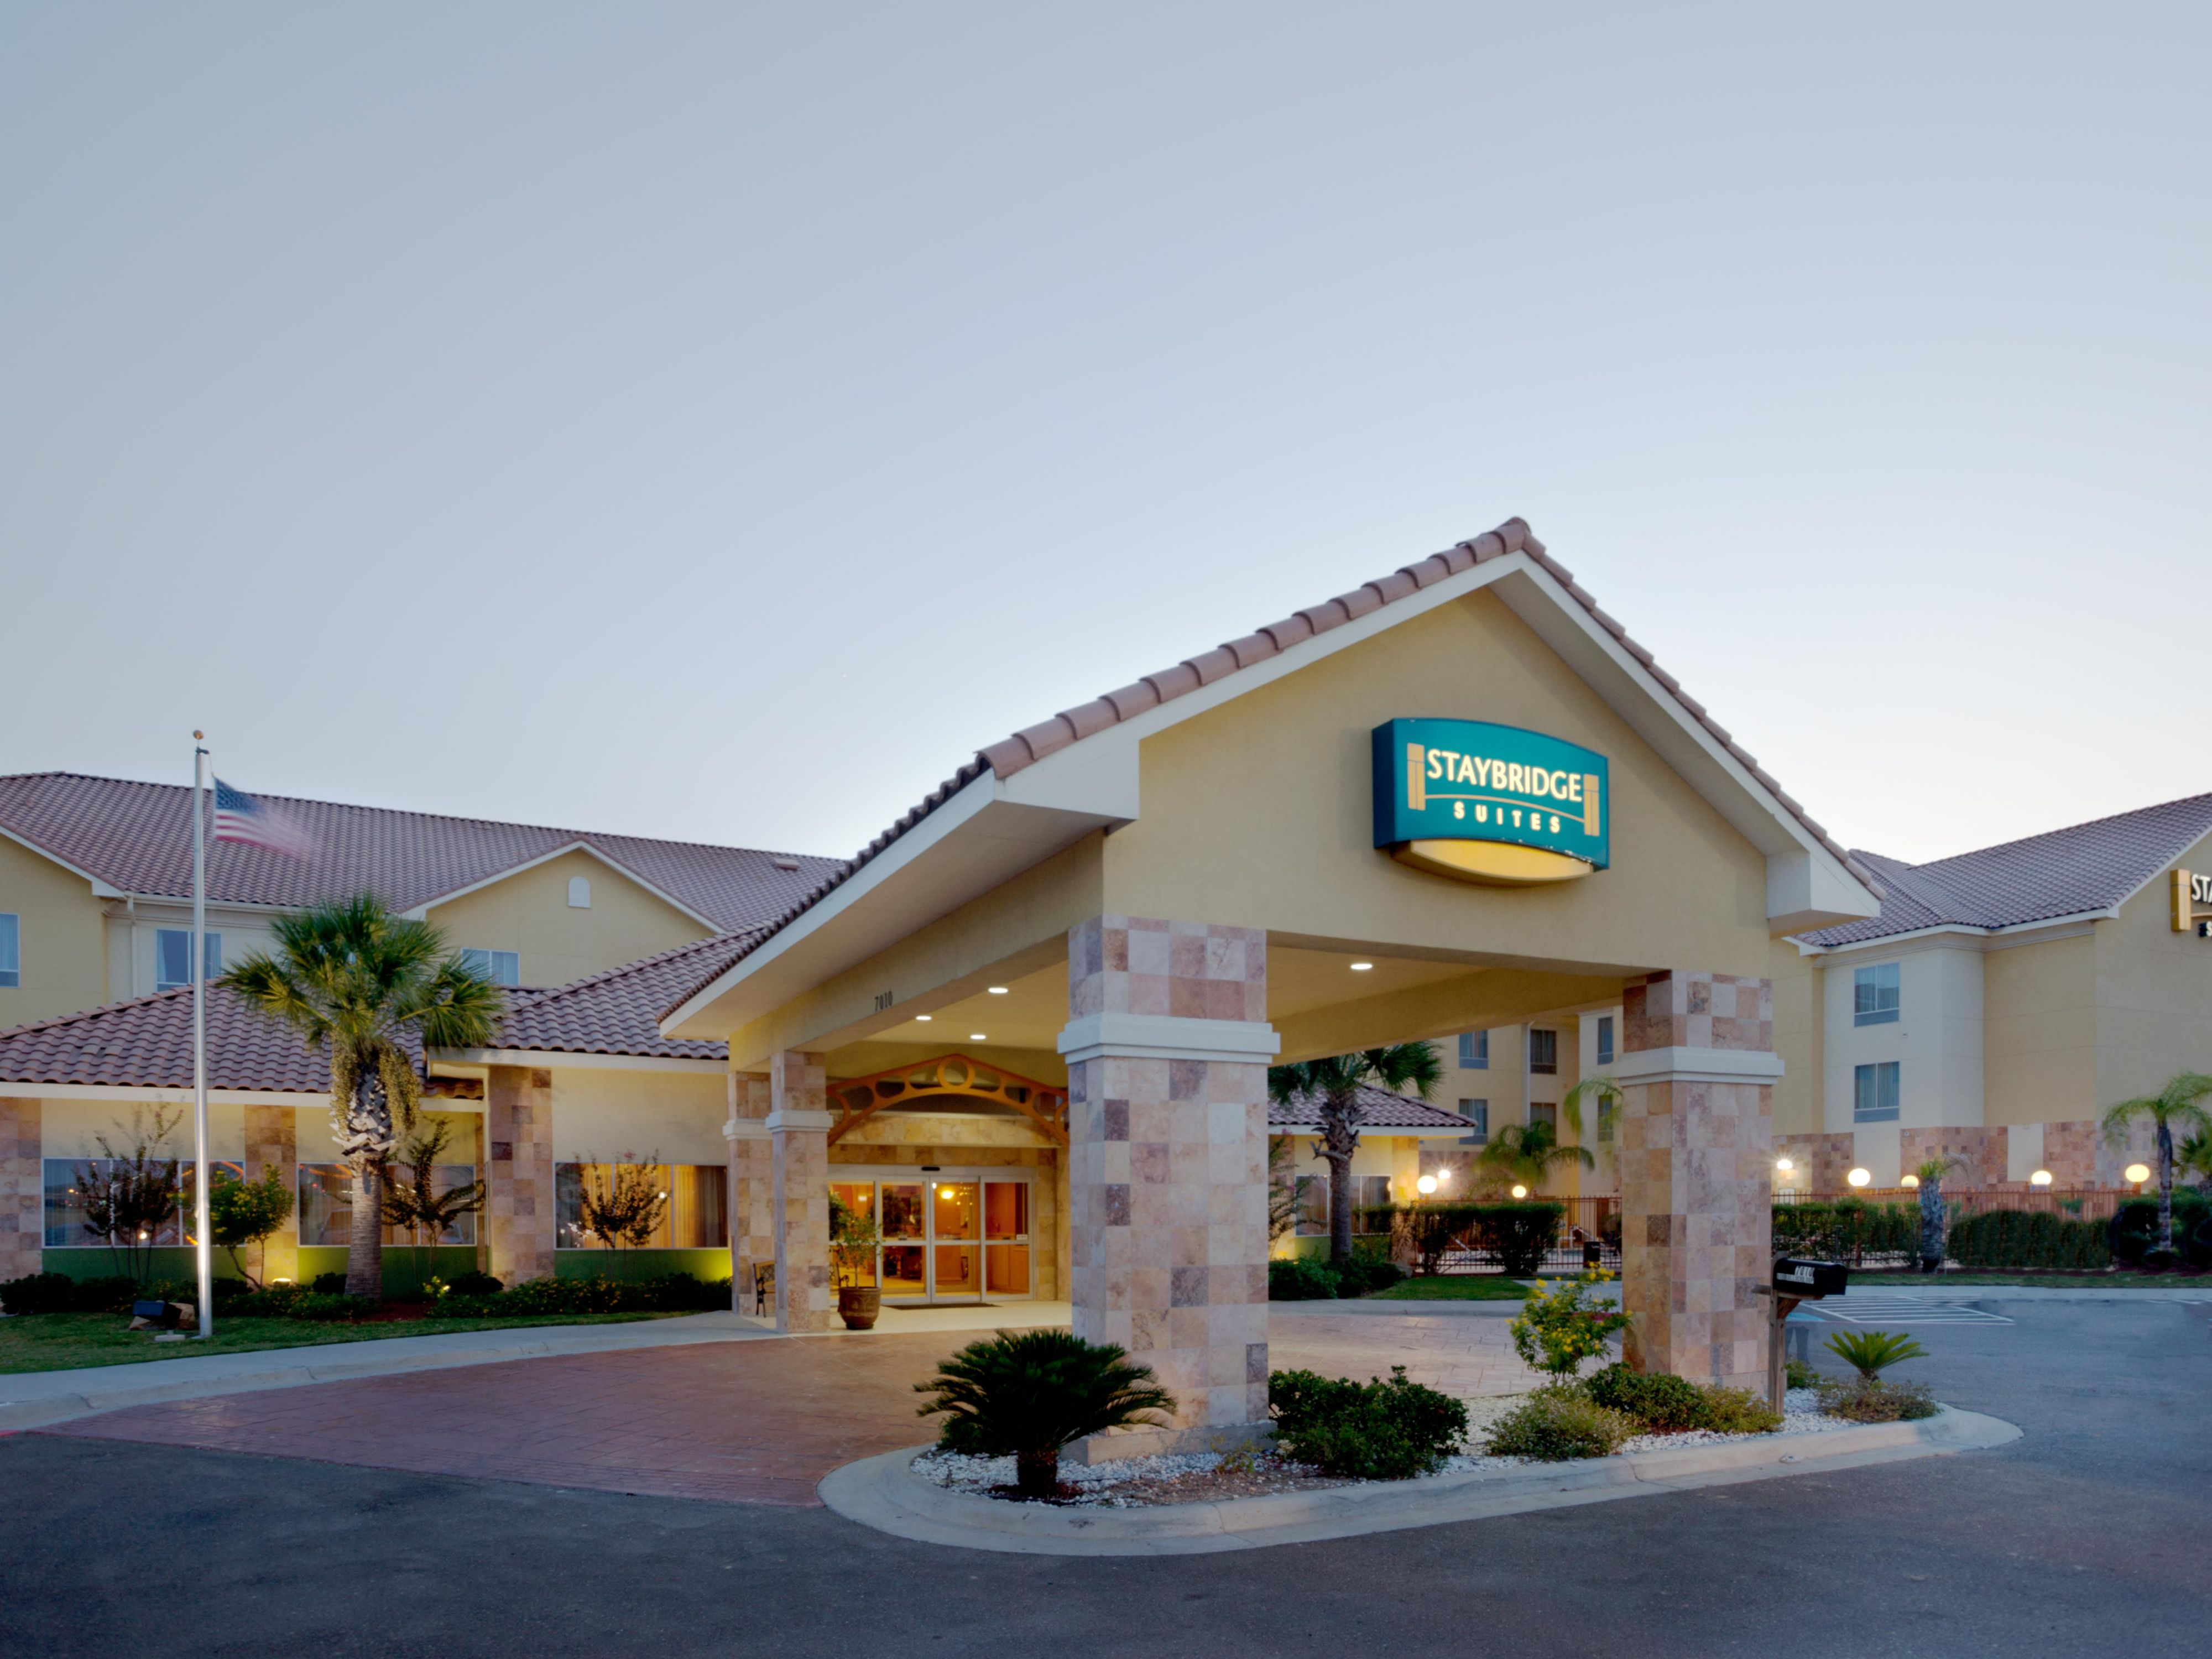 Laredo Hotels Staybridge Suites International Airport Extended Stay Hotel In Texas